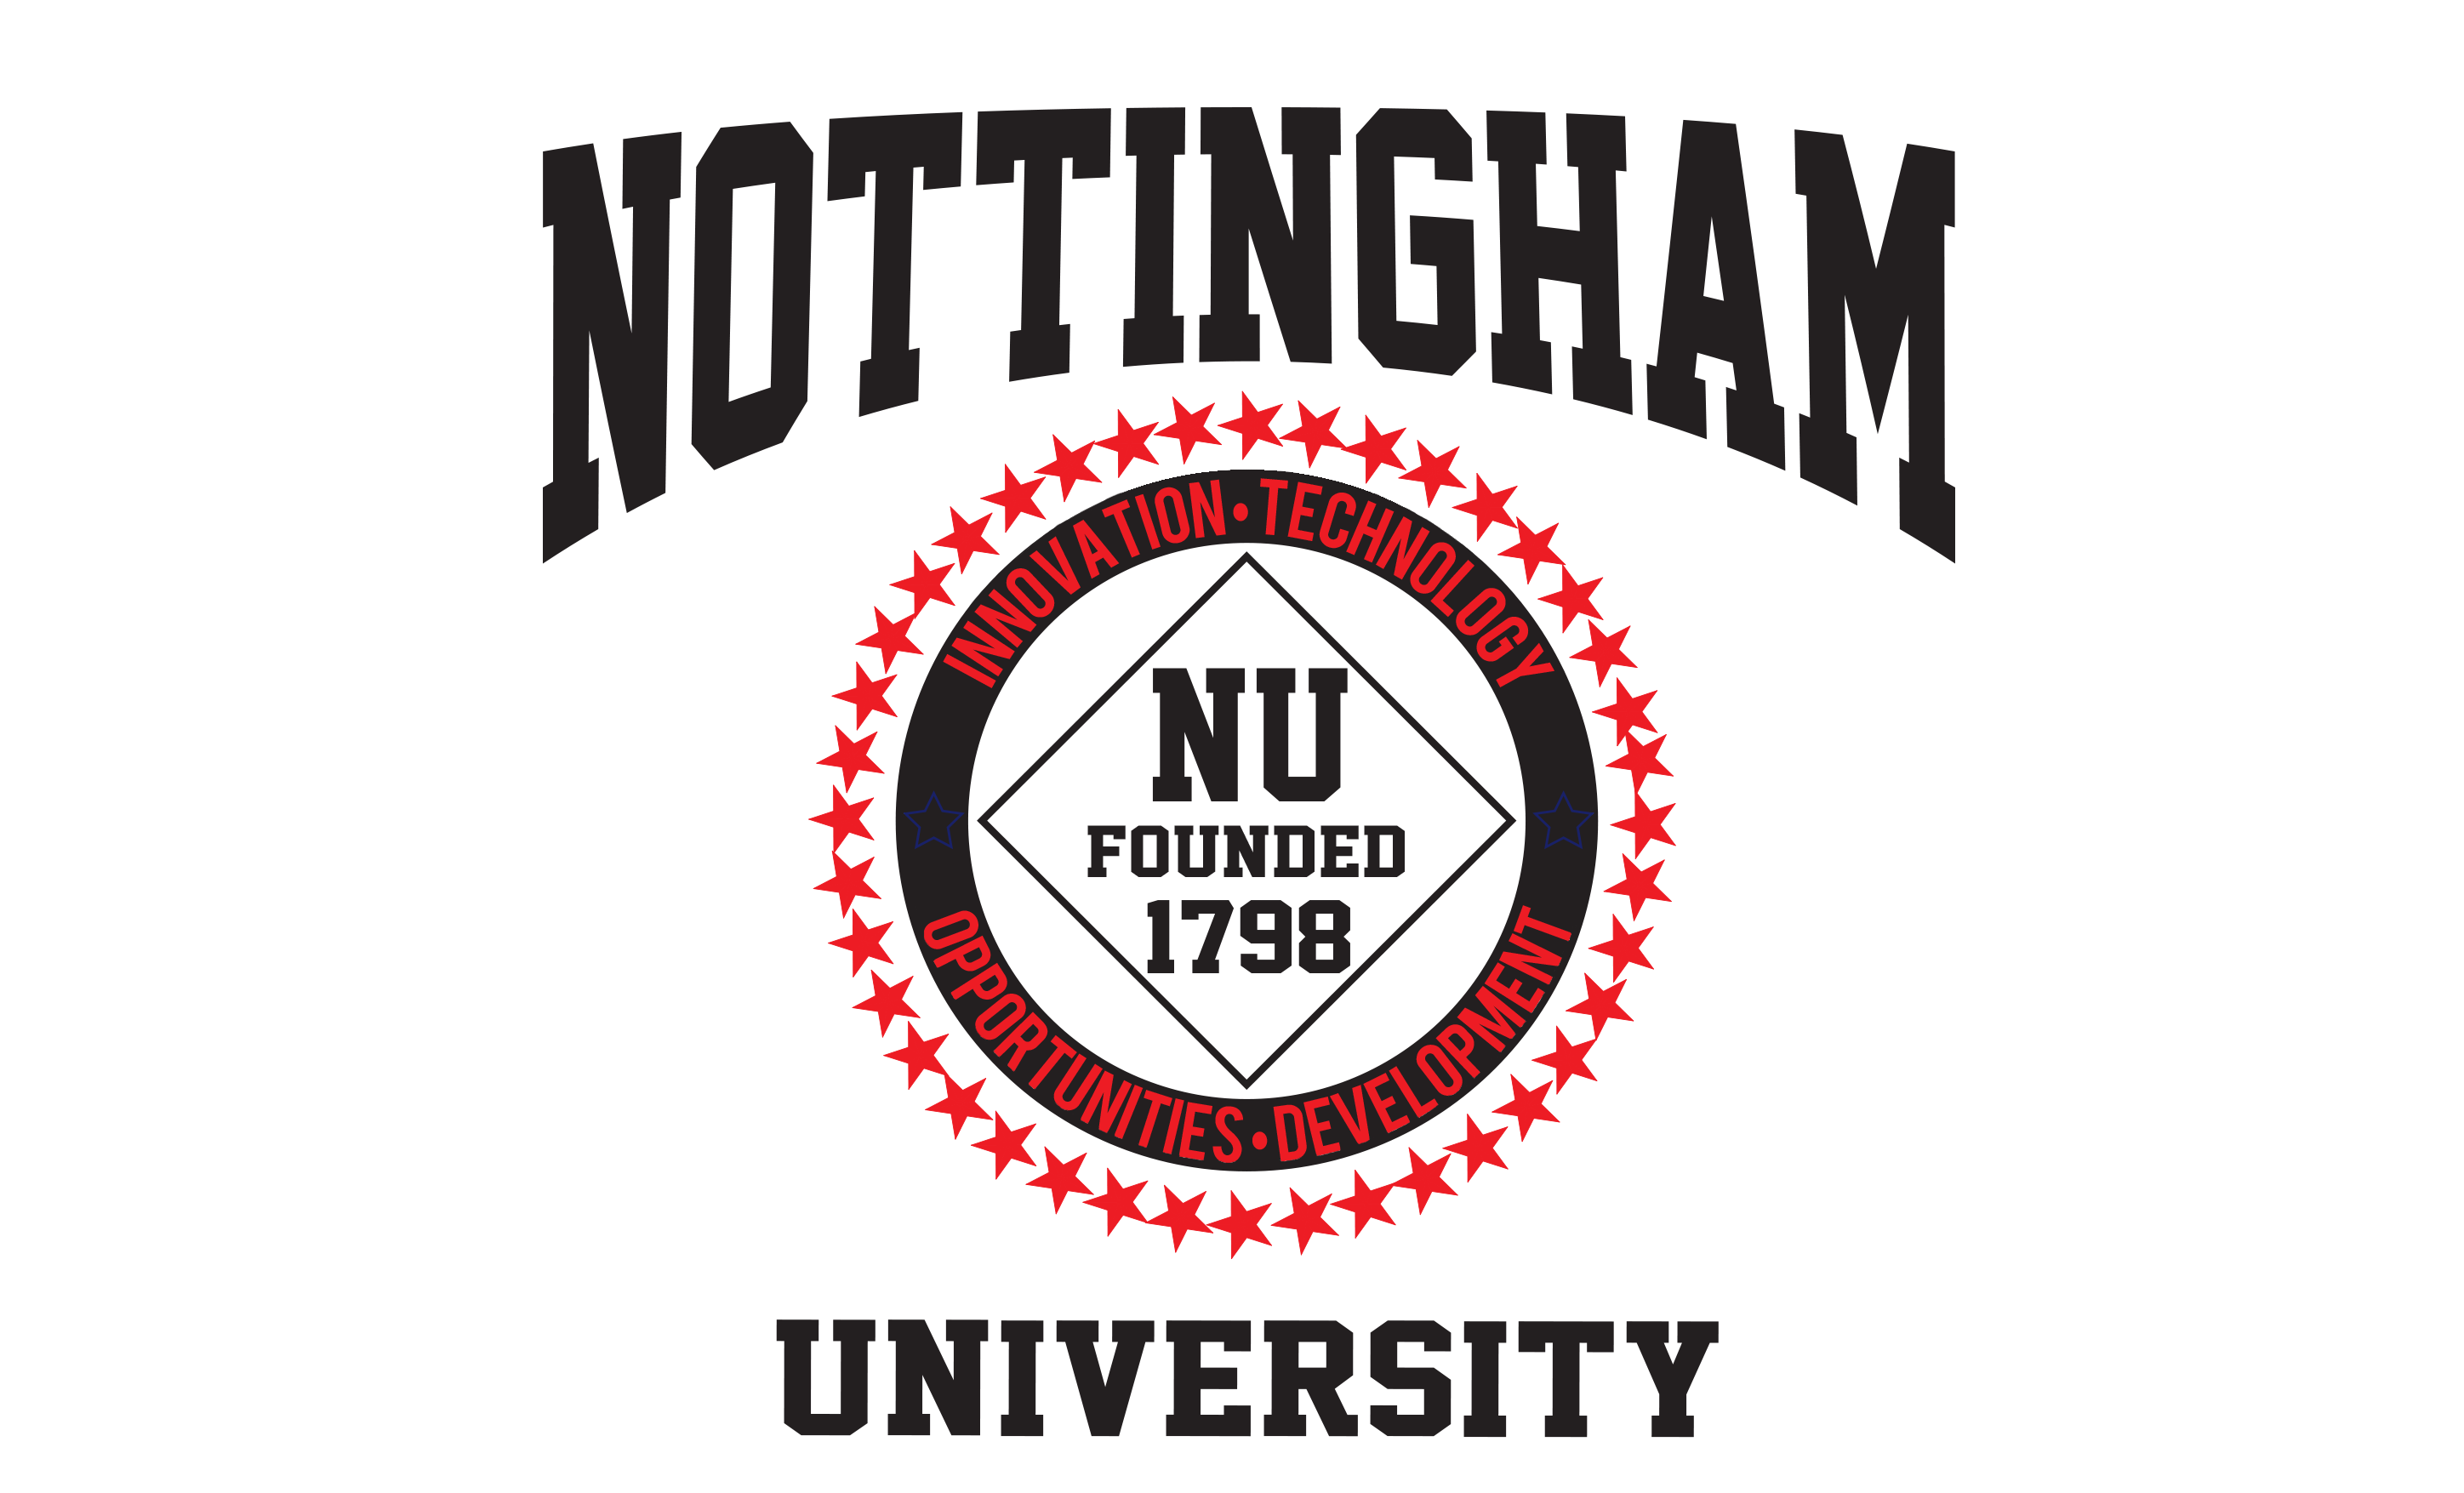 Nottingham Design 3001